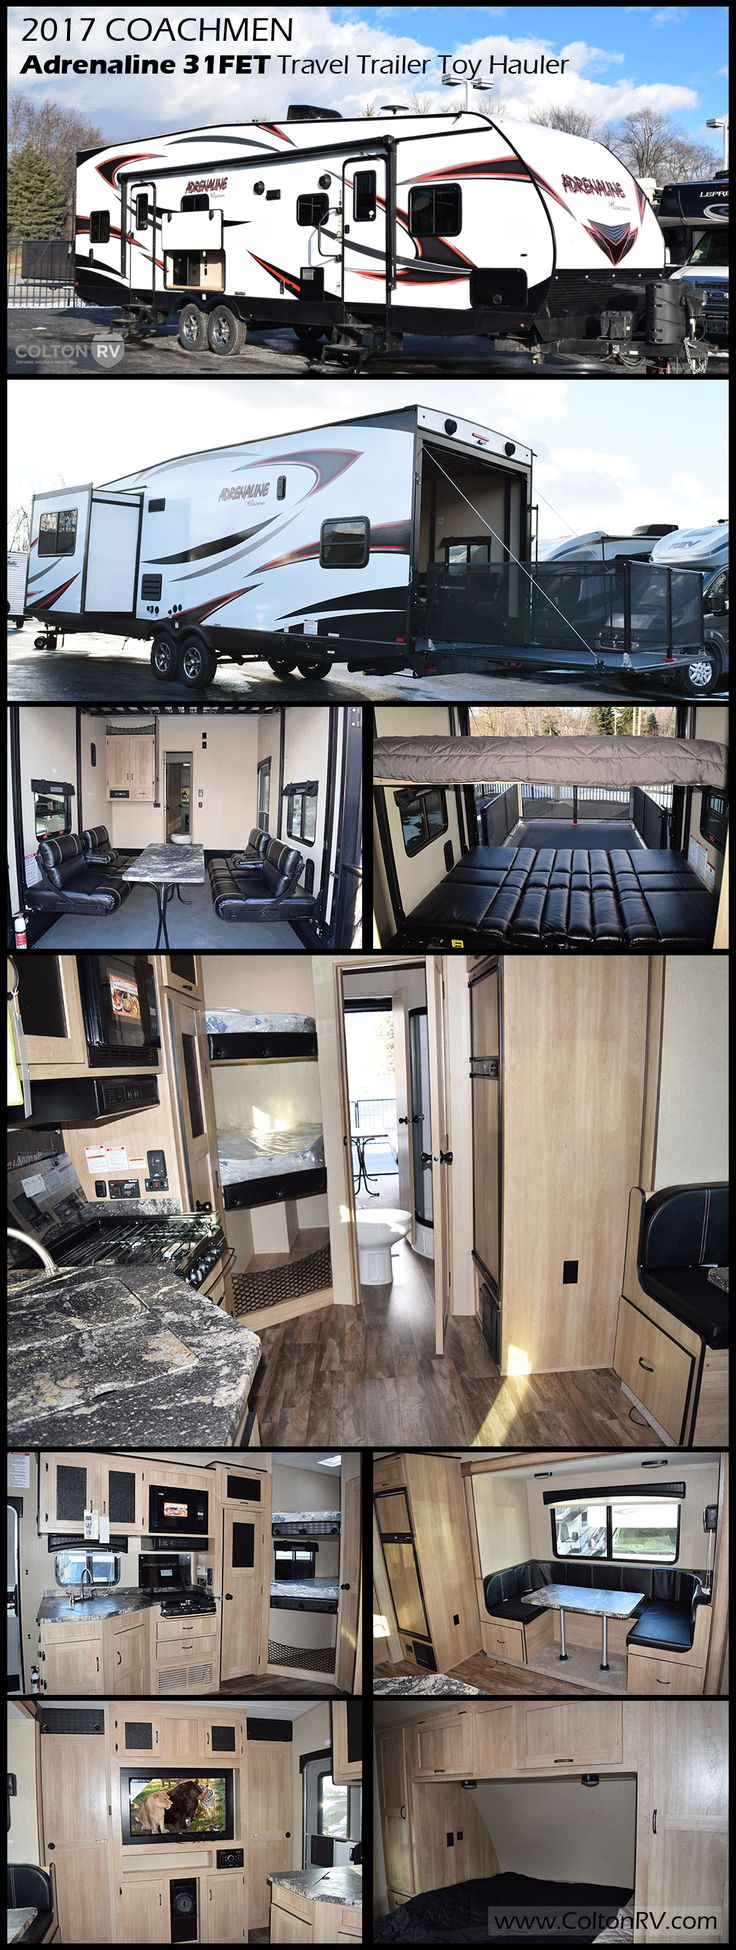 Enjoy this COACHMEN ADRENALINE 31FET Travel Trailer TOY HAULER featuring 10' of cargo space for your favorite outdoor toys, sleeping for 6-9 and all of the amenities you need to keep everyone clean, fed and having fun!!